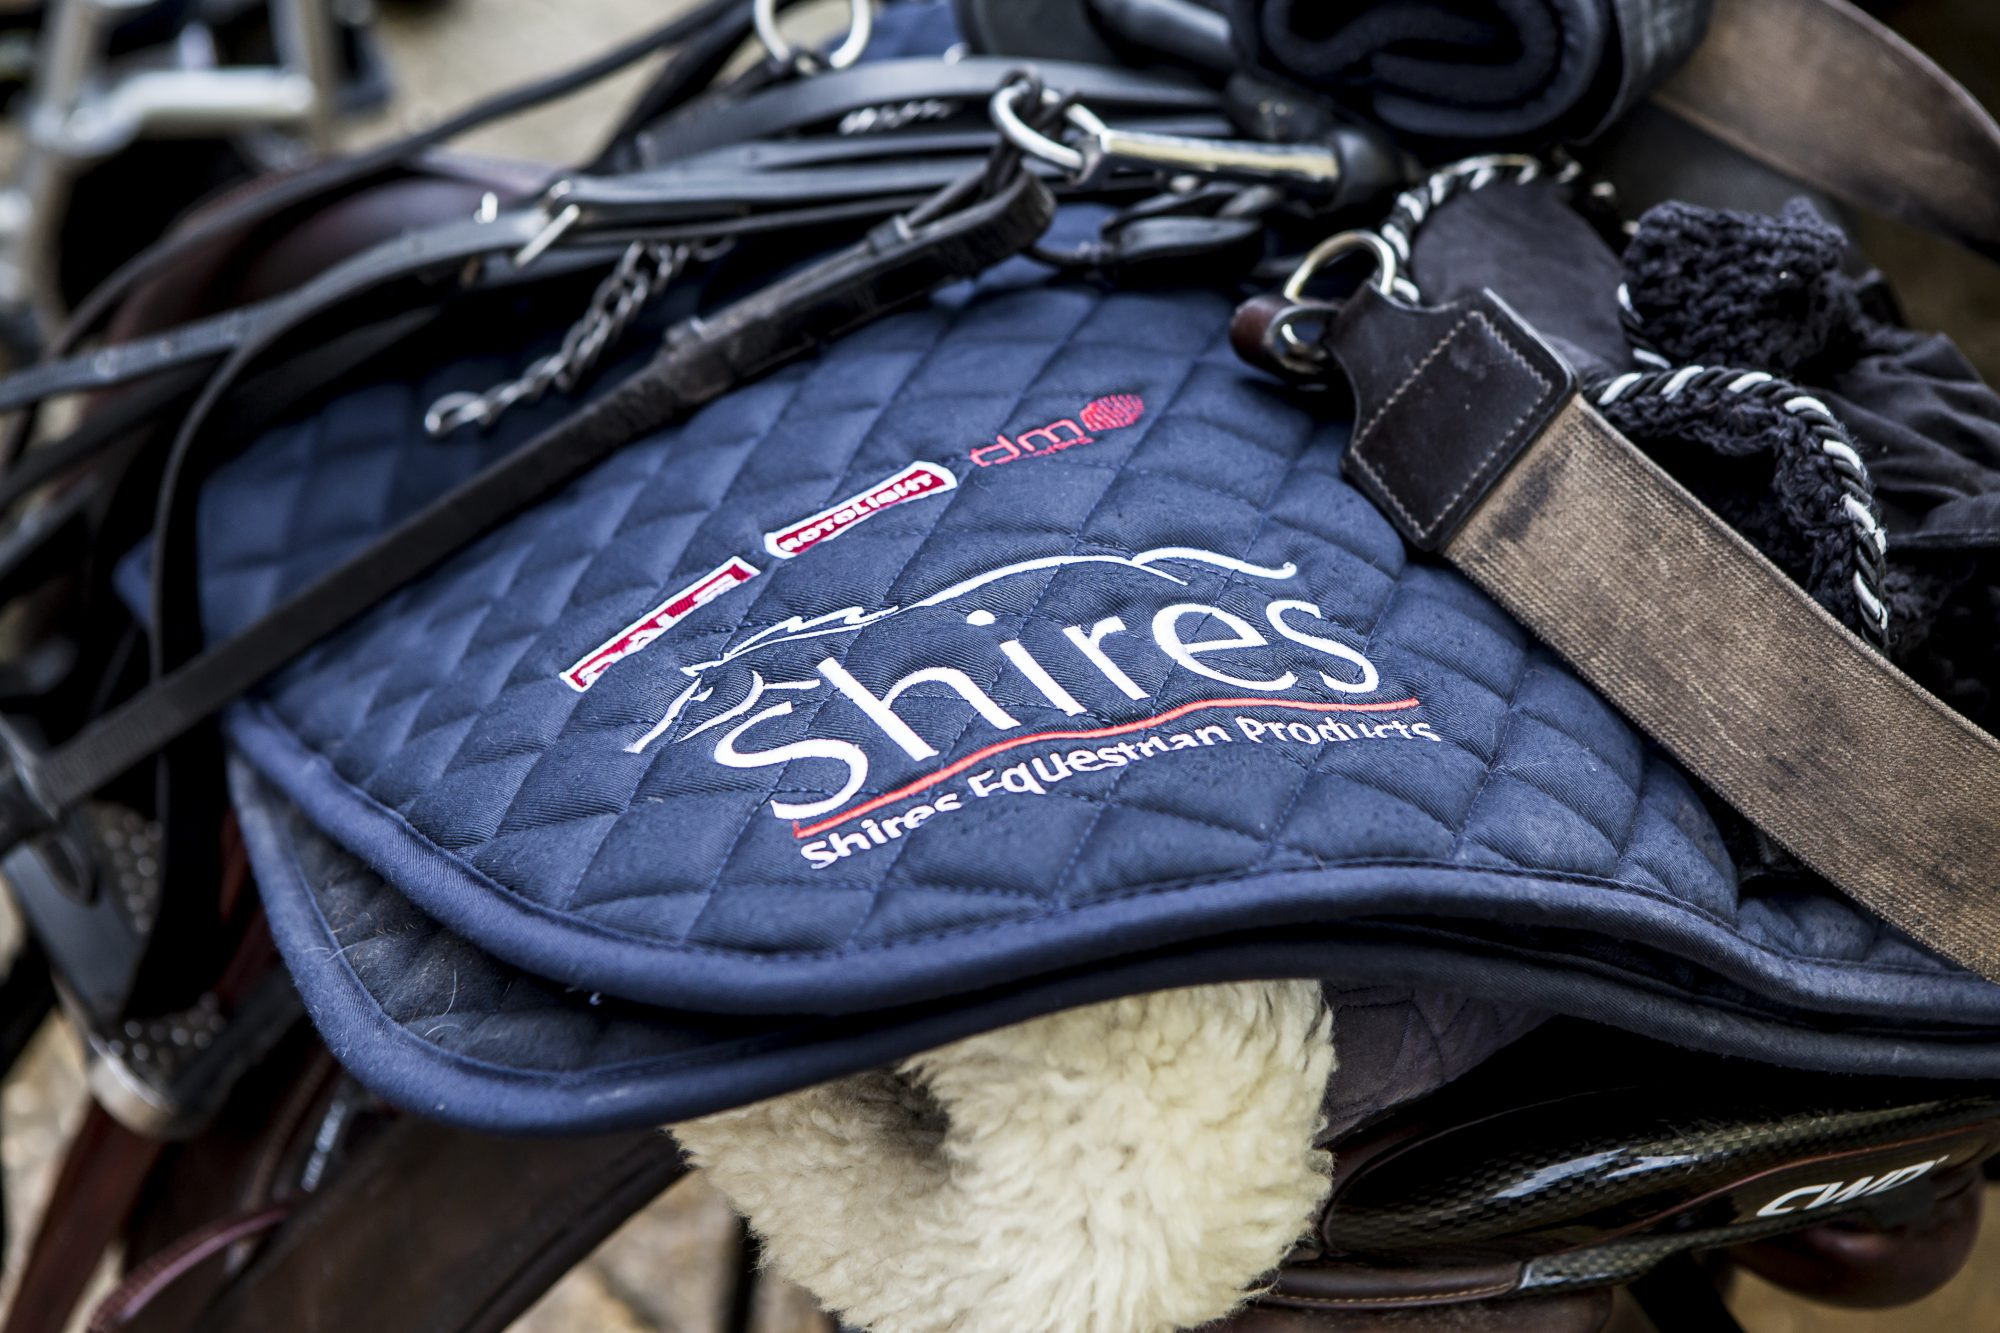 Shires – Product – Emma Lowe Photography